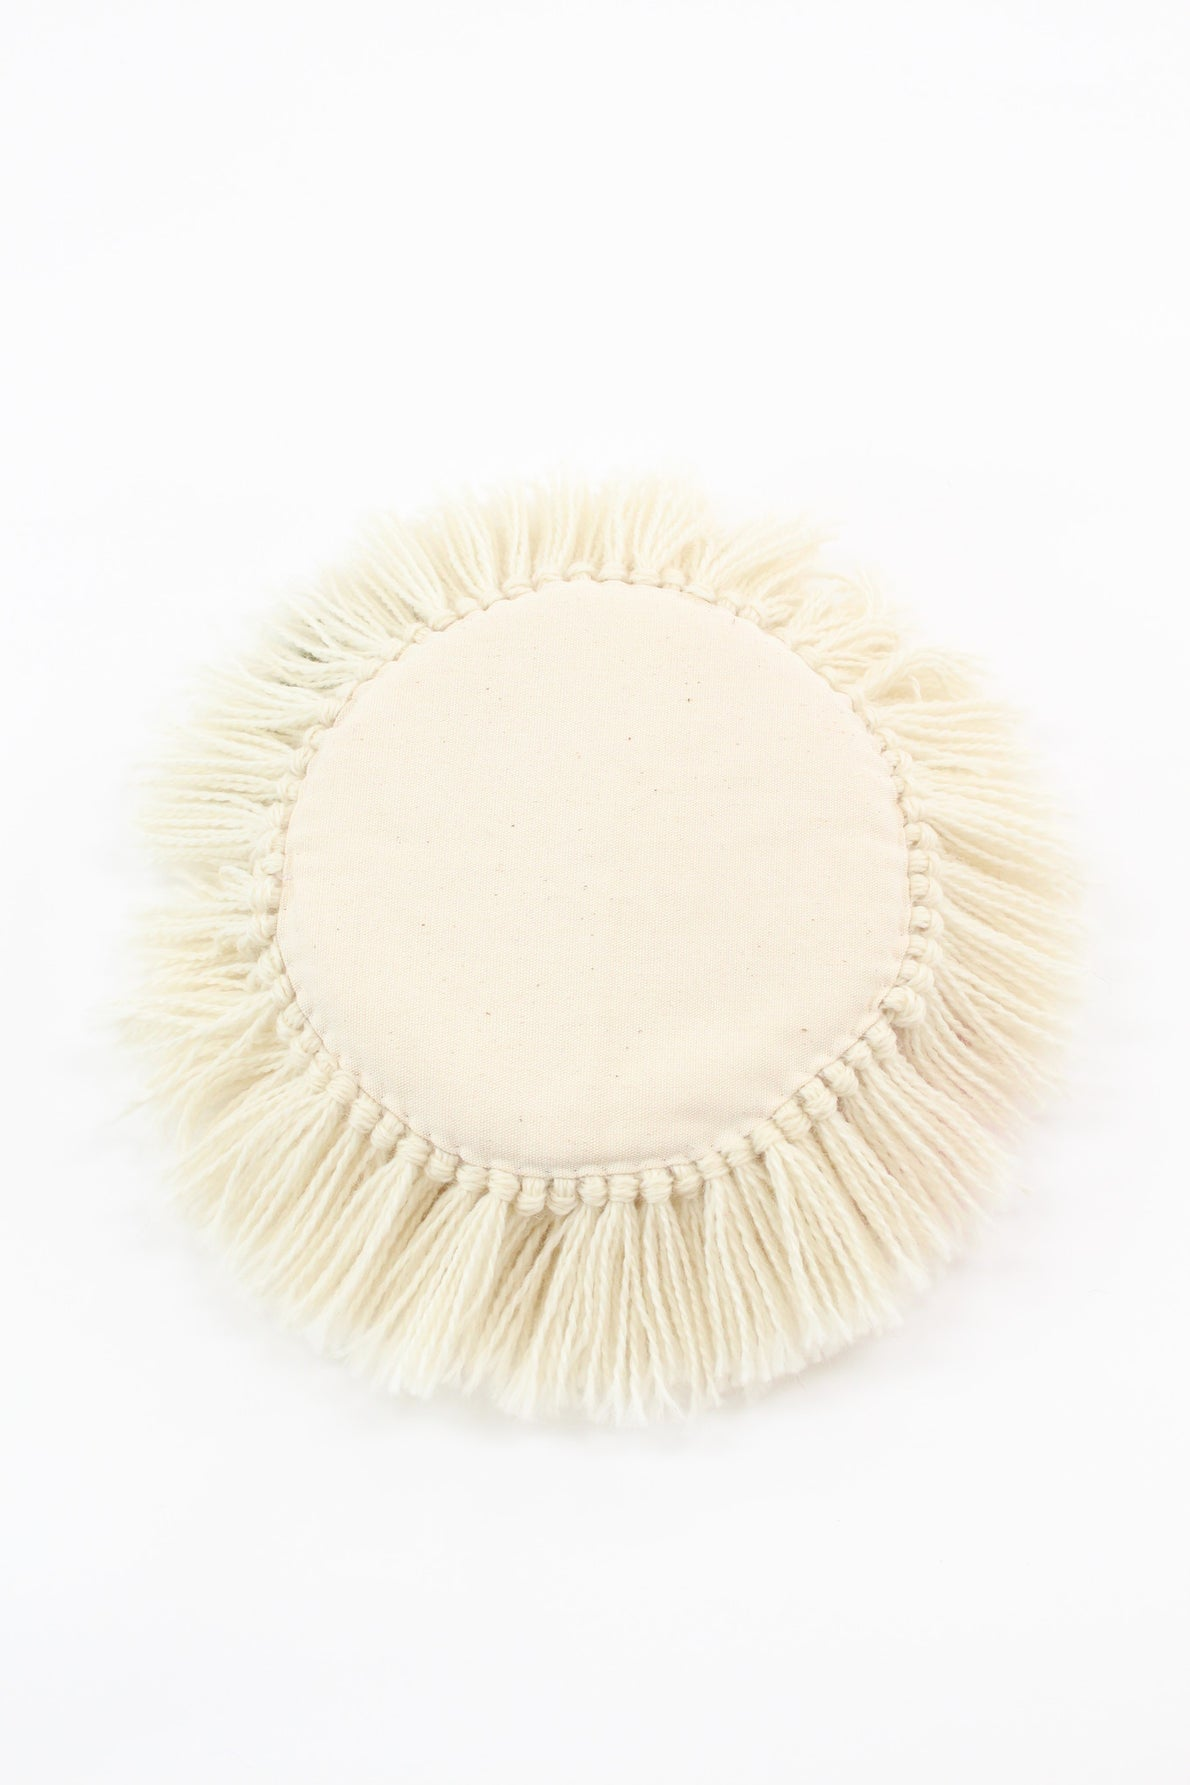 Beklina Alpaca Handmade Fringe Pillows A8